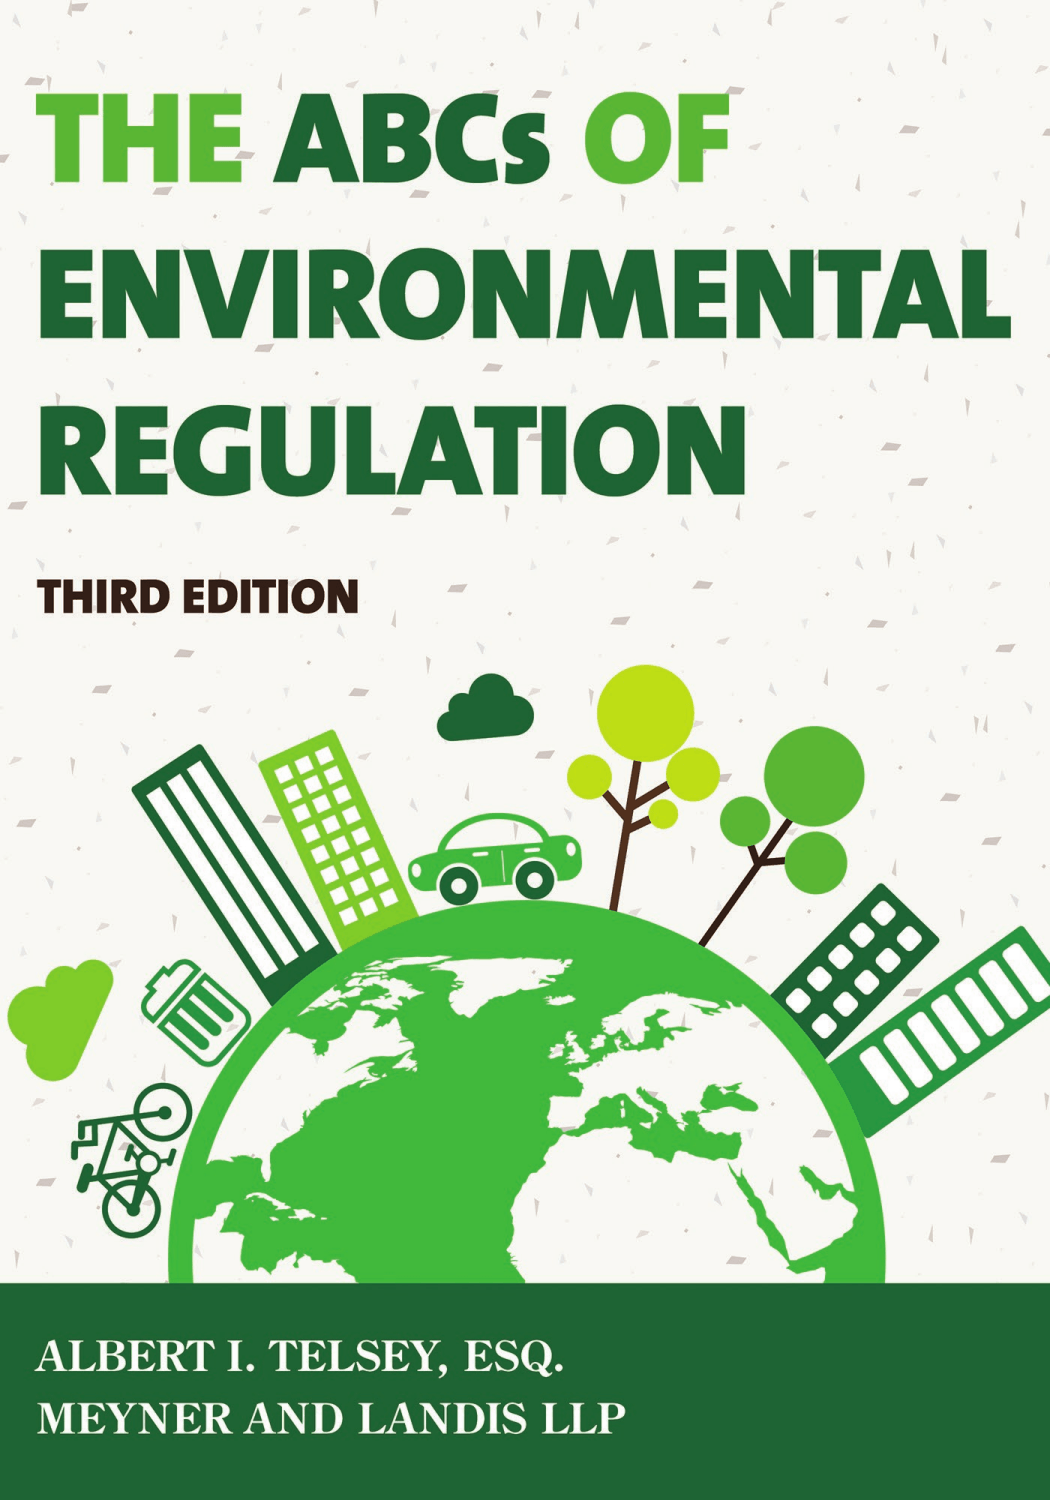 the regulatory guidelines of the three environmental acts As a business owner, you must meet the whs requirements set out in the acts and regulations in your state or territory you may face penalties if you don't meet them acts give a general overview of how to make workplaces safe and healthy.